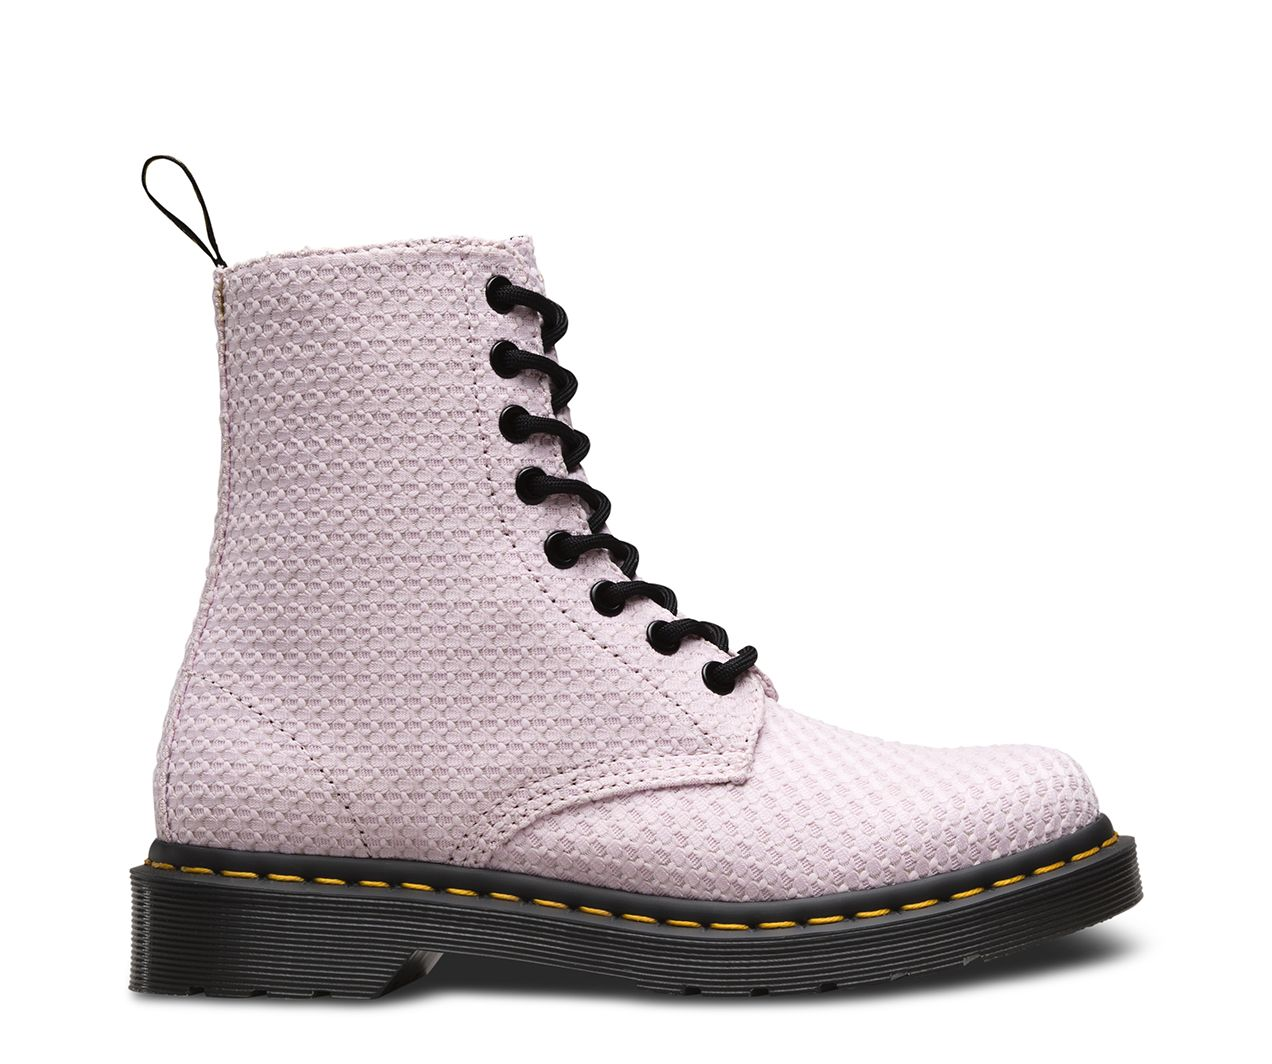 This Page boot was designed in light waffle cotton. Features all the classic Doc's DNA, like grooved sides, yellow stitching and heel tab, and our iconic air-cushioned sole.